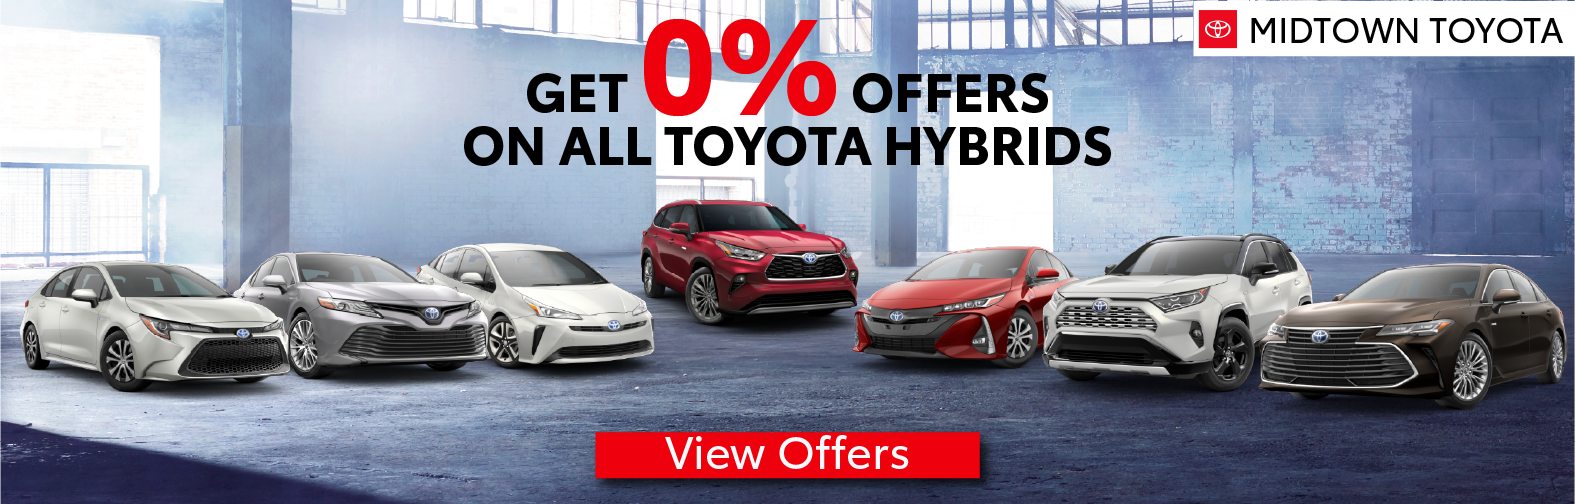 Midtown Toyota 0% offers on all Hybrid vehicles